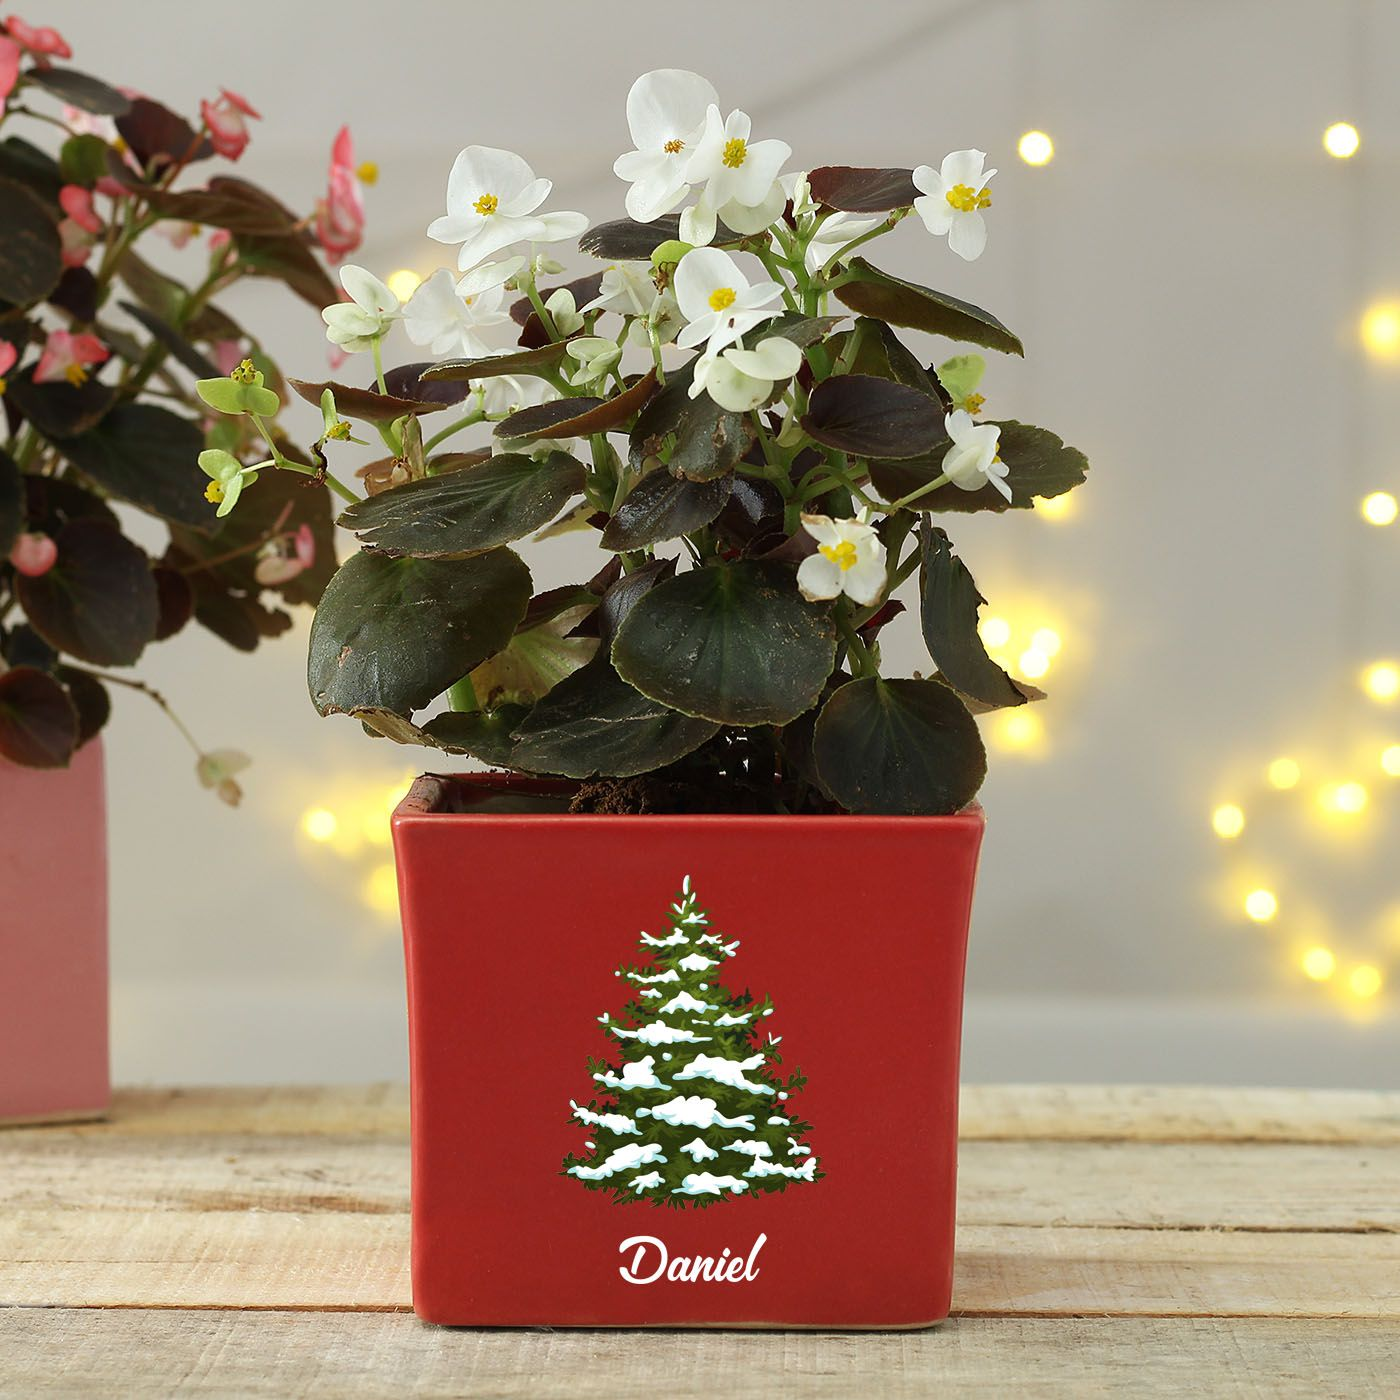 Christmas Themed Personalized Red Planter Pot | Online christmas gifts,  Christmas themes, Quirky christmas gifts